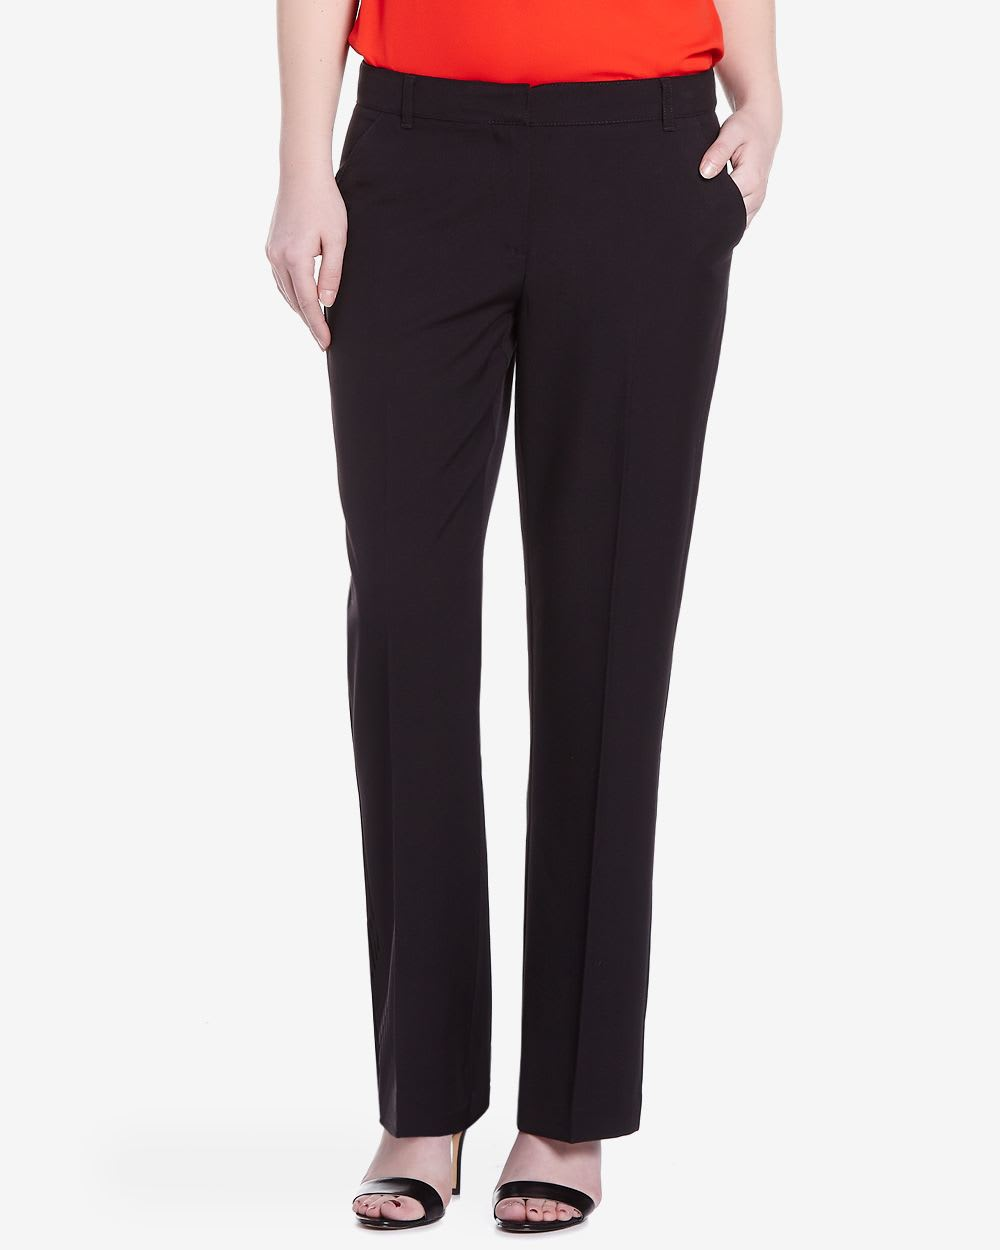 These high-waisted dress pants feature boot-cut design and are great to wear with high heels for a business look. Groupon. Search Groupon Zip Code, Neighborhood, City The perfect pair of slacks! I am 5'3